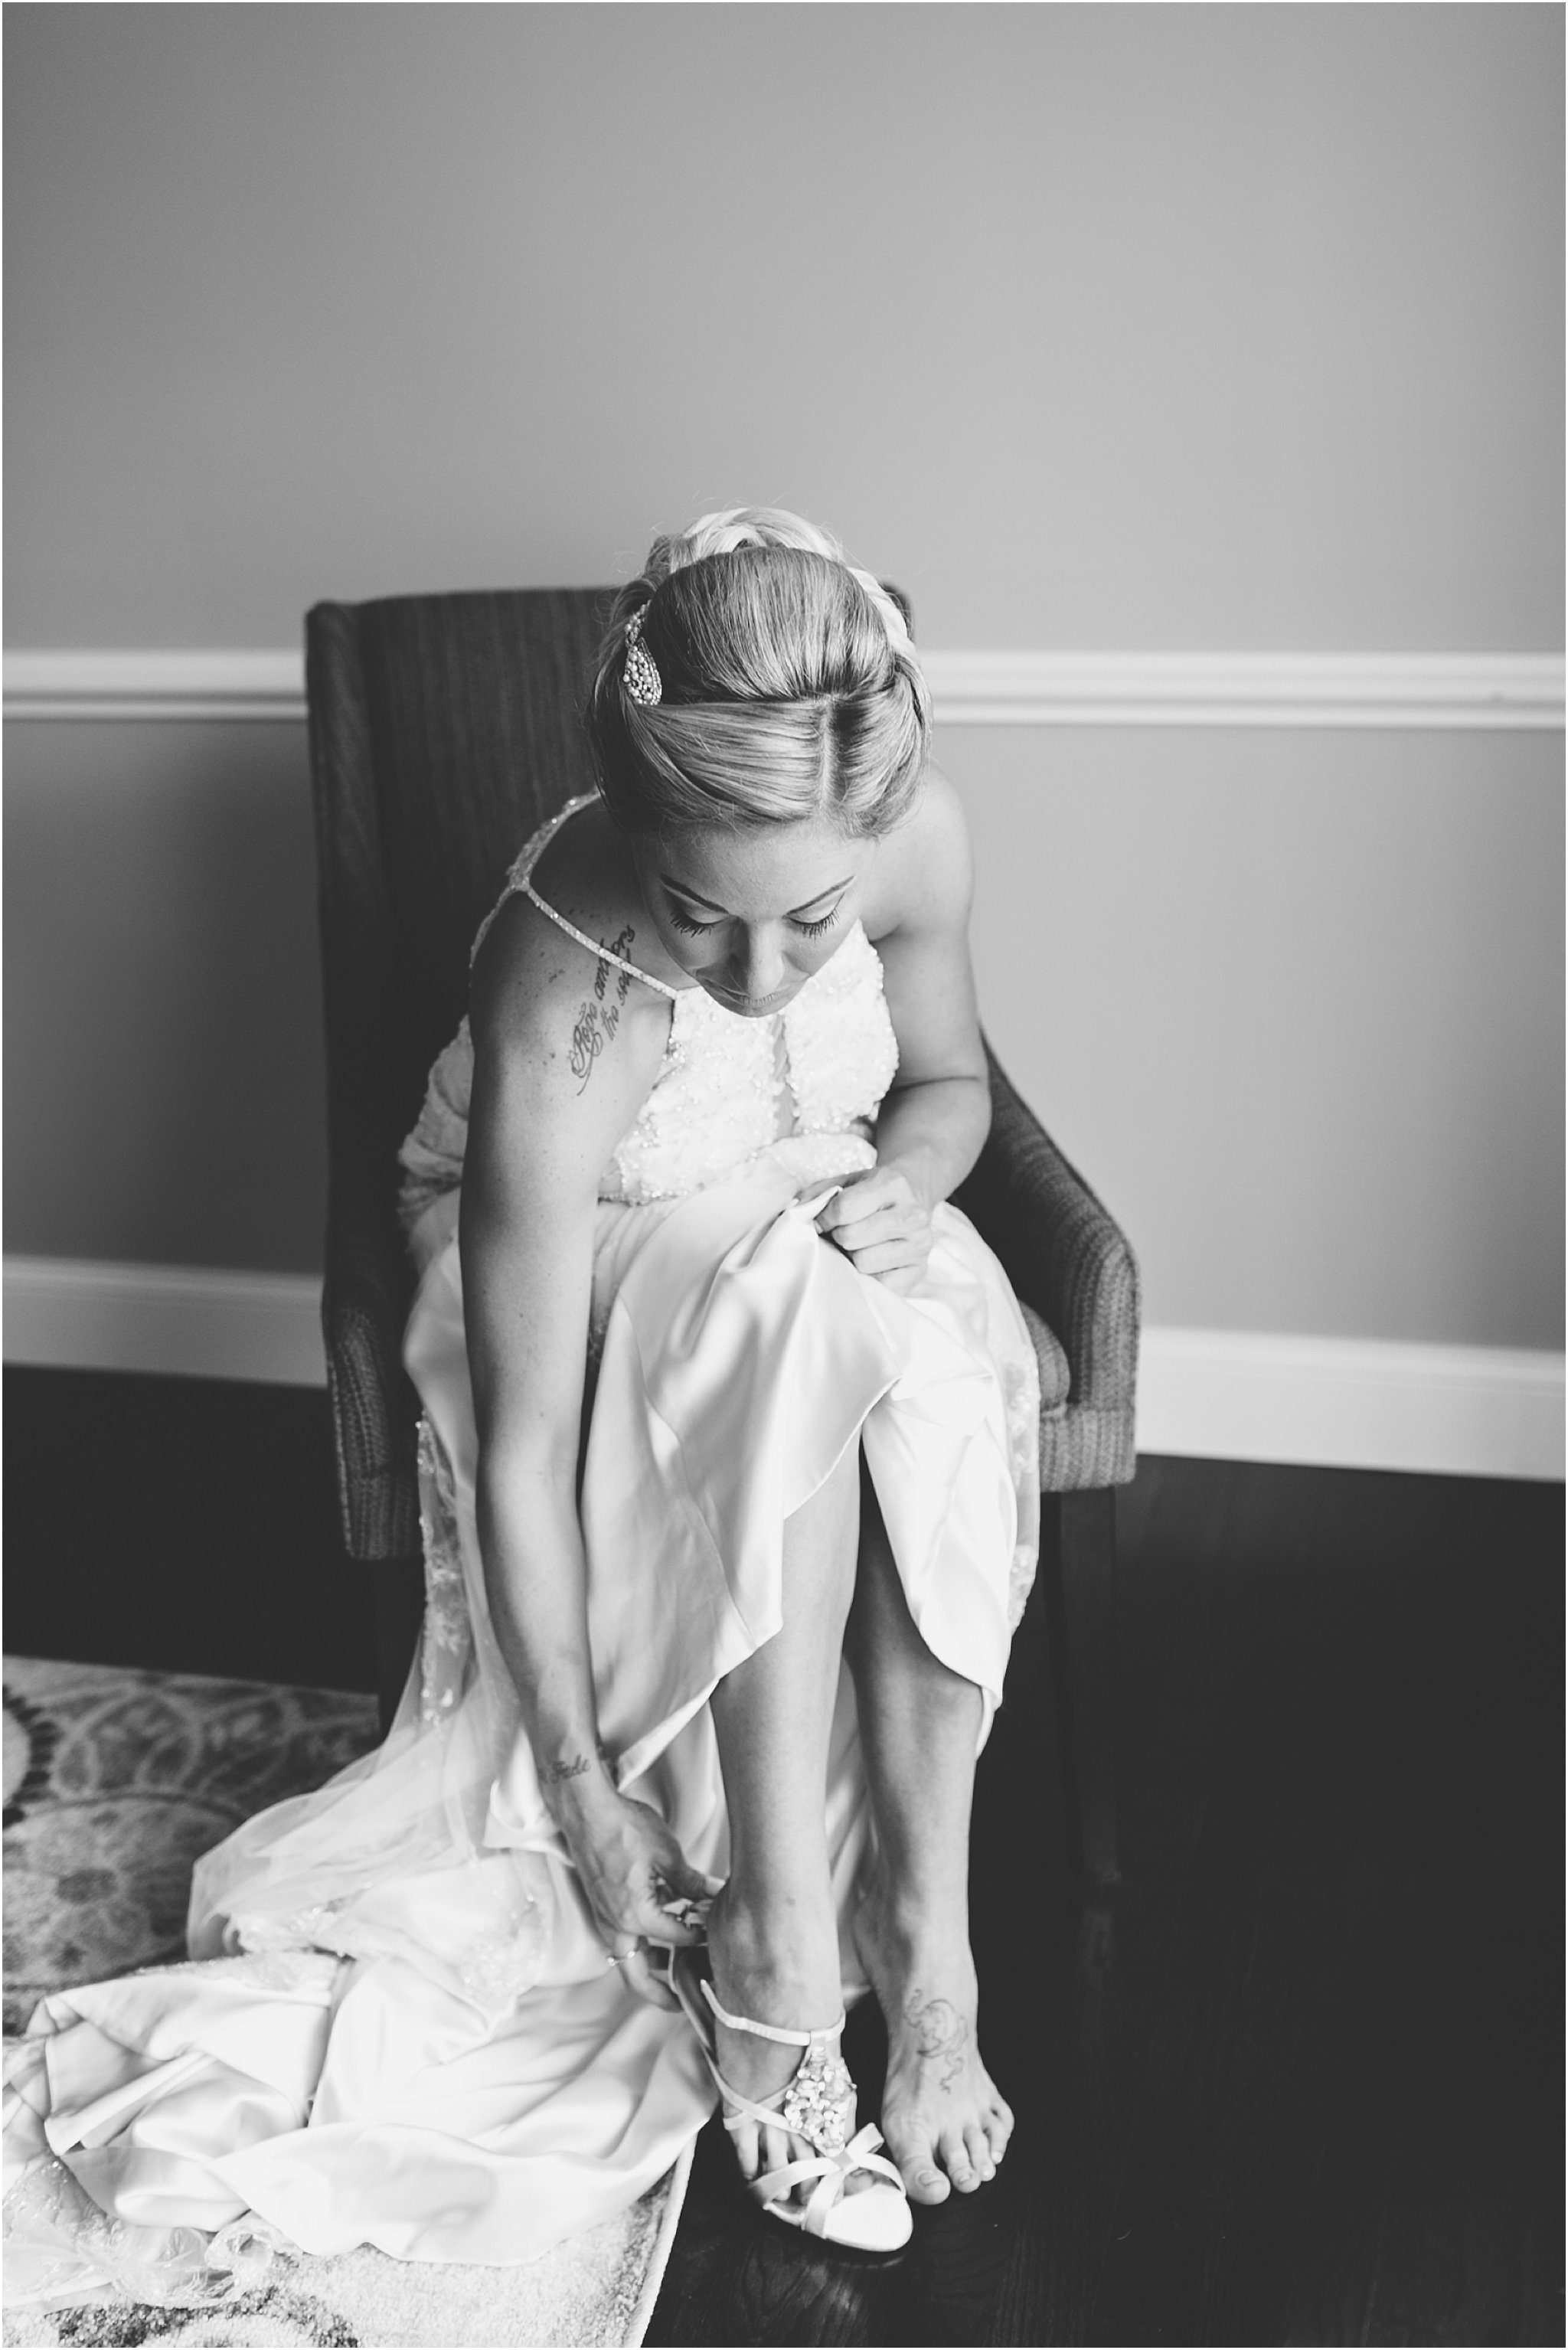 jessica_ryan_photography_wedding_photographs_must_haves_bride_top_wedding_photographs_virginia_wedding_photographer_2025